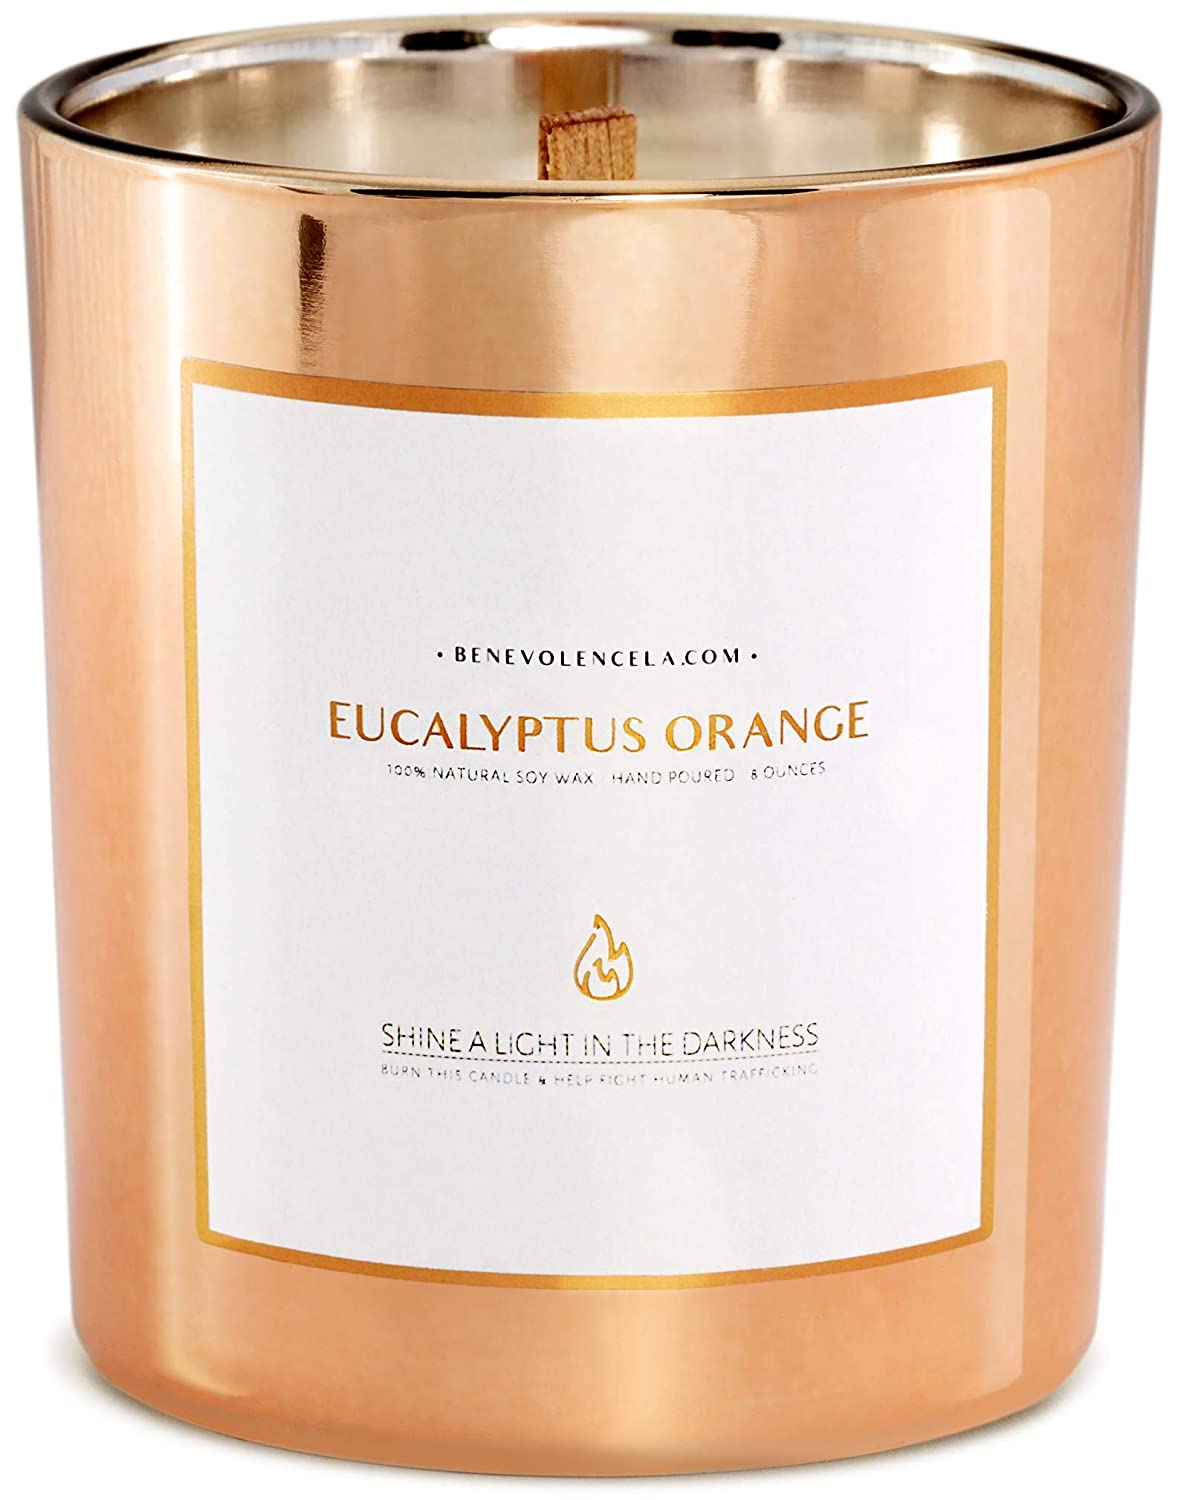 Premium Eucalyptus & Orange Hand Poured Scented Candles, 8 oz | 45 Hour Burn, Long Lasting, Highly Scented, All Natural Soy Candles | Relaxing Aromatherapy Candle in Rose Gold Glass Jar